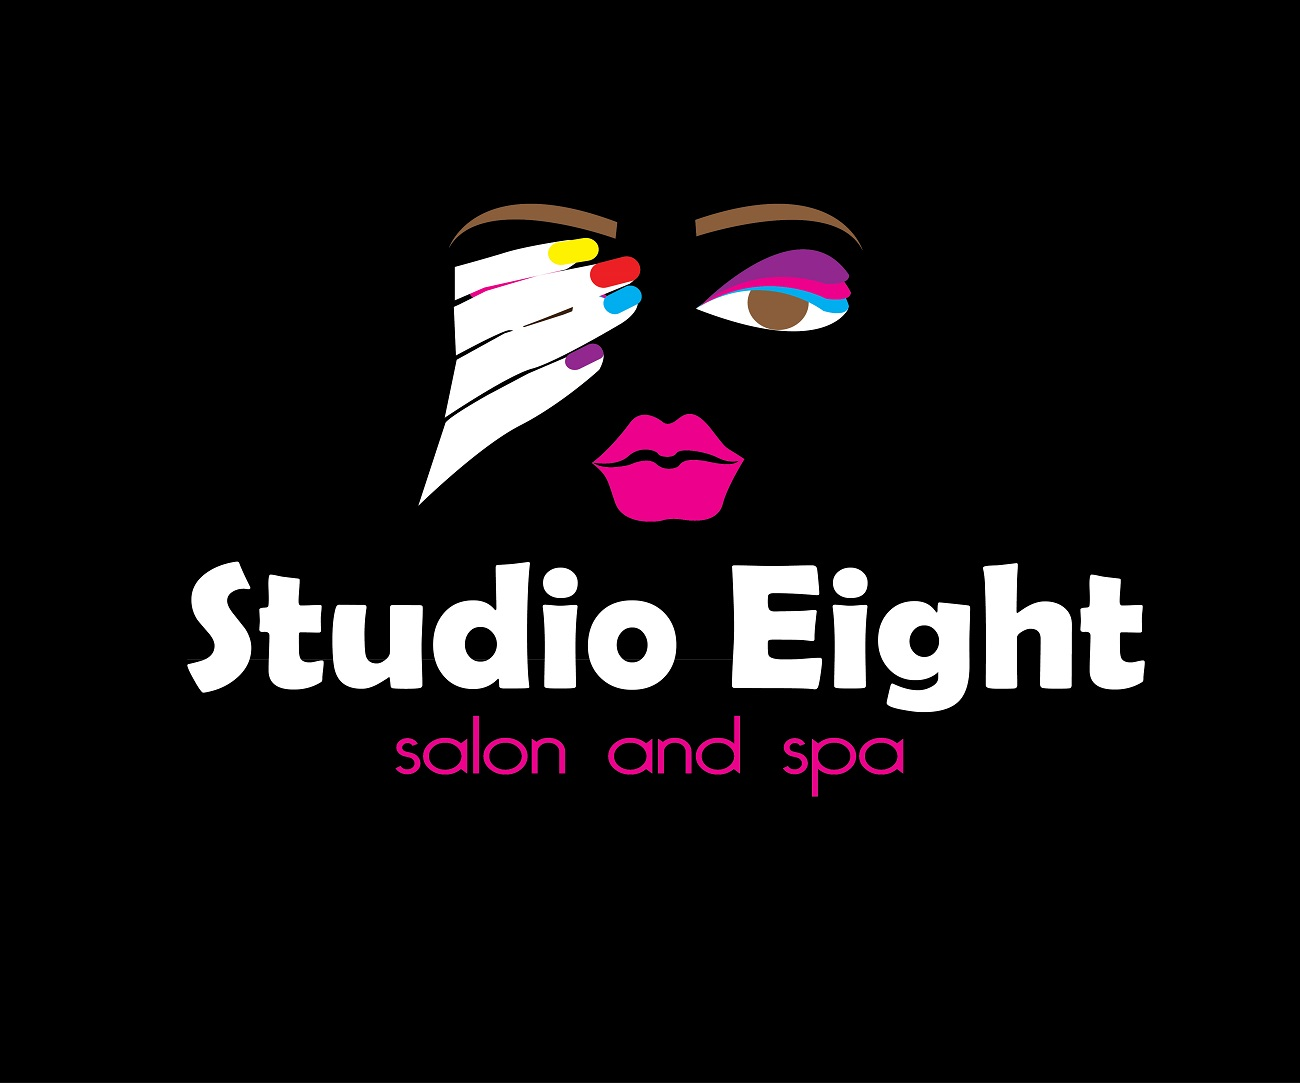 Logo Design by jhunzkie24 - Entry No. 89 in the Logo Design Contest Captivating Logo Design for studio eight salon & spa.